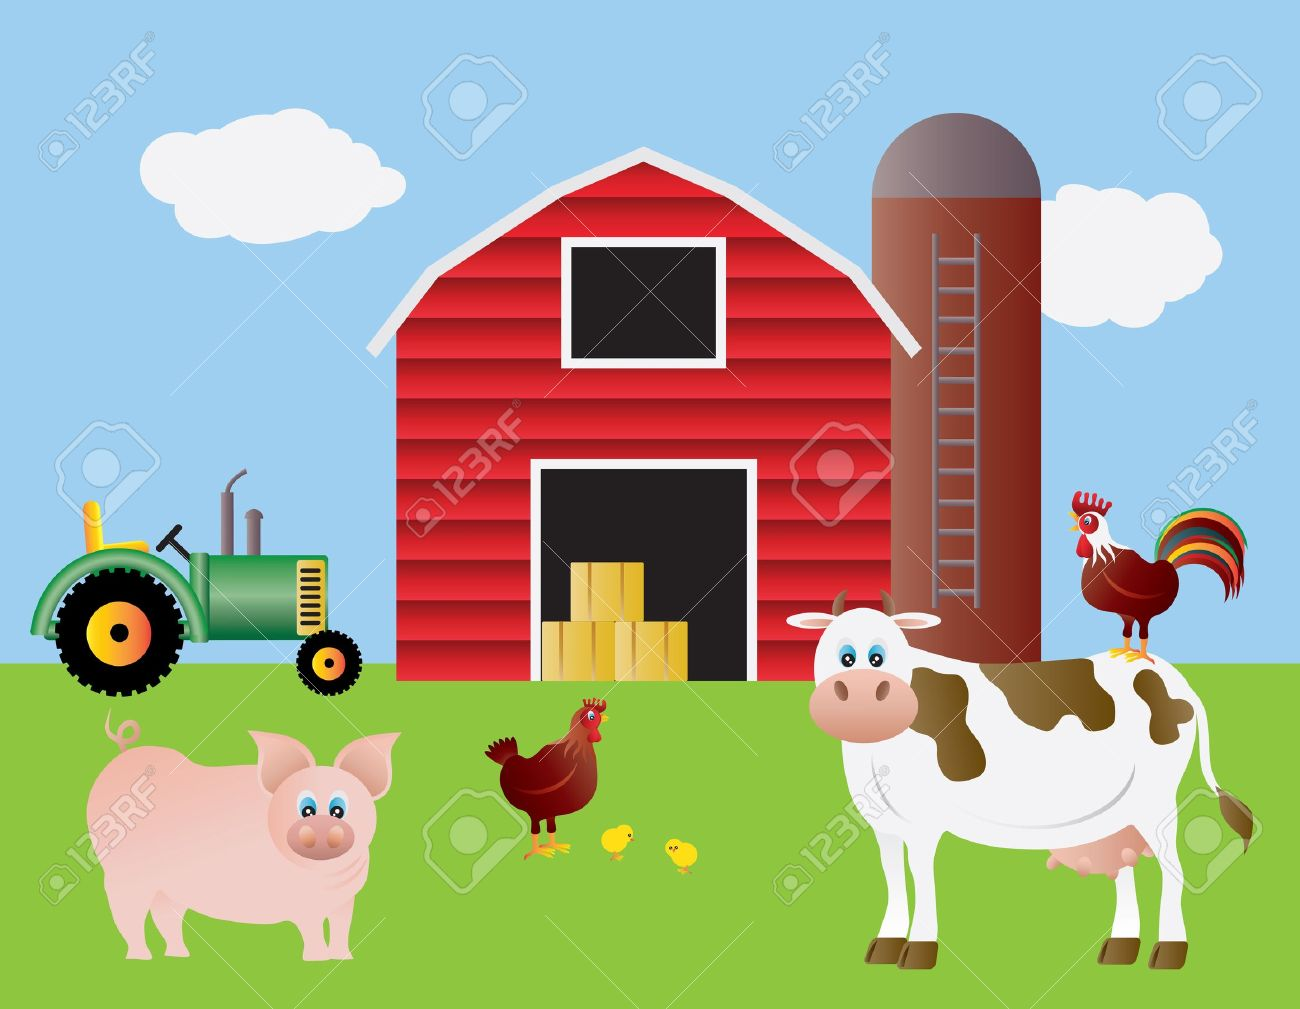 Farm With Red Barn Tractor Pig Cow Chicken Animals Illustration Stock Vector